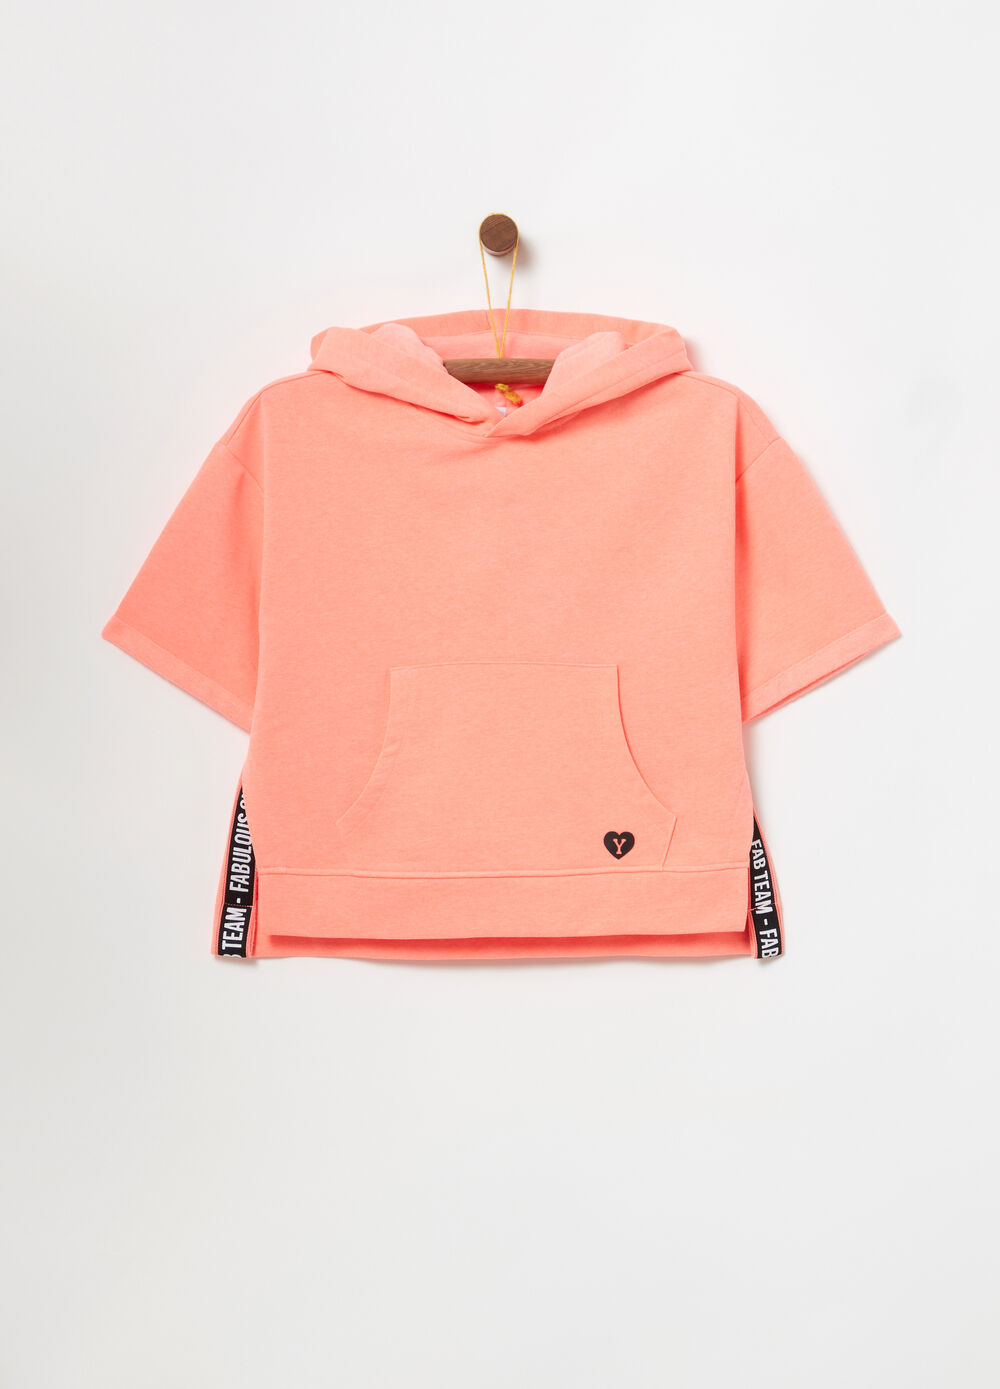 Hoodie with short sleeves